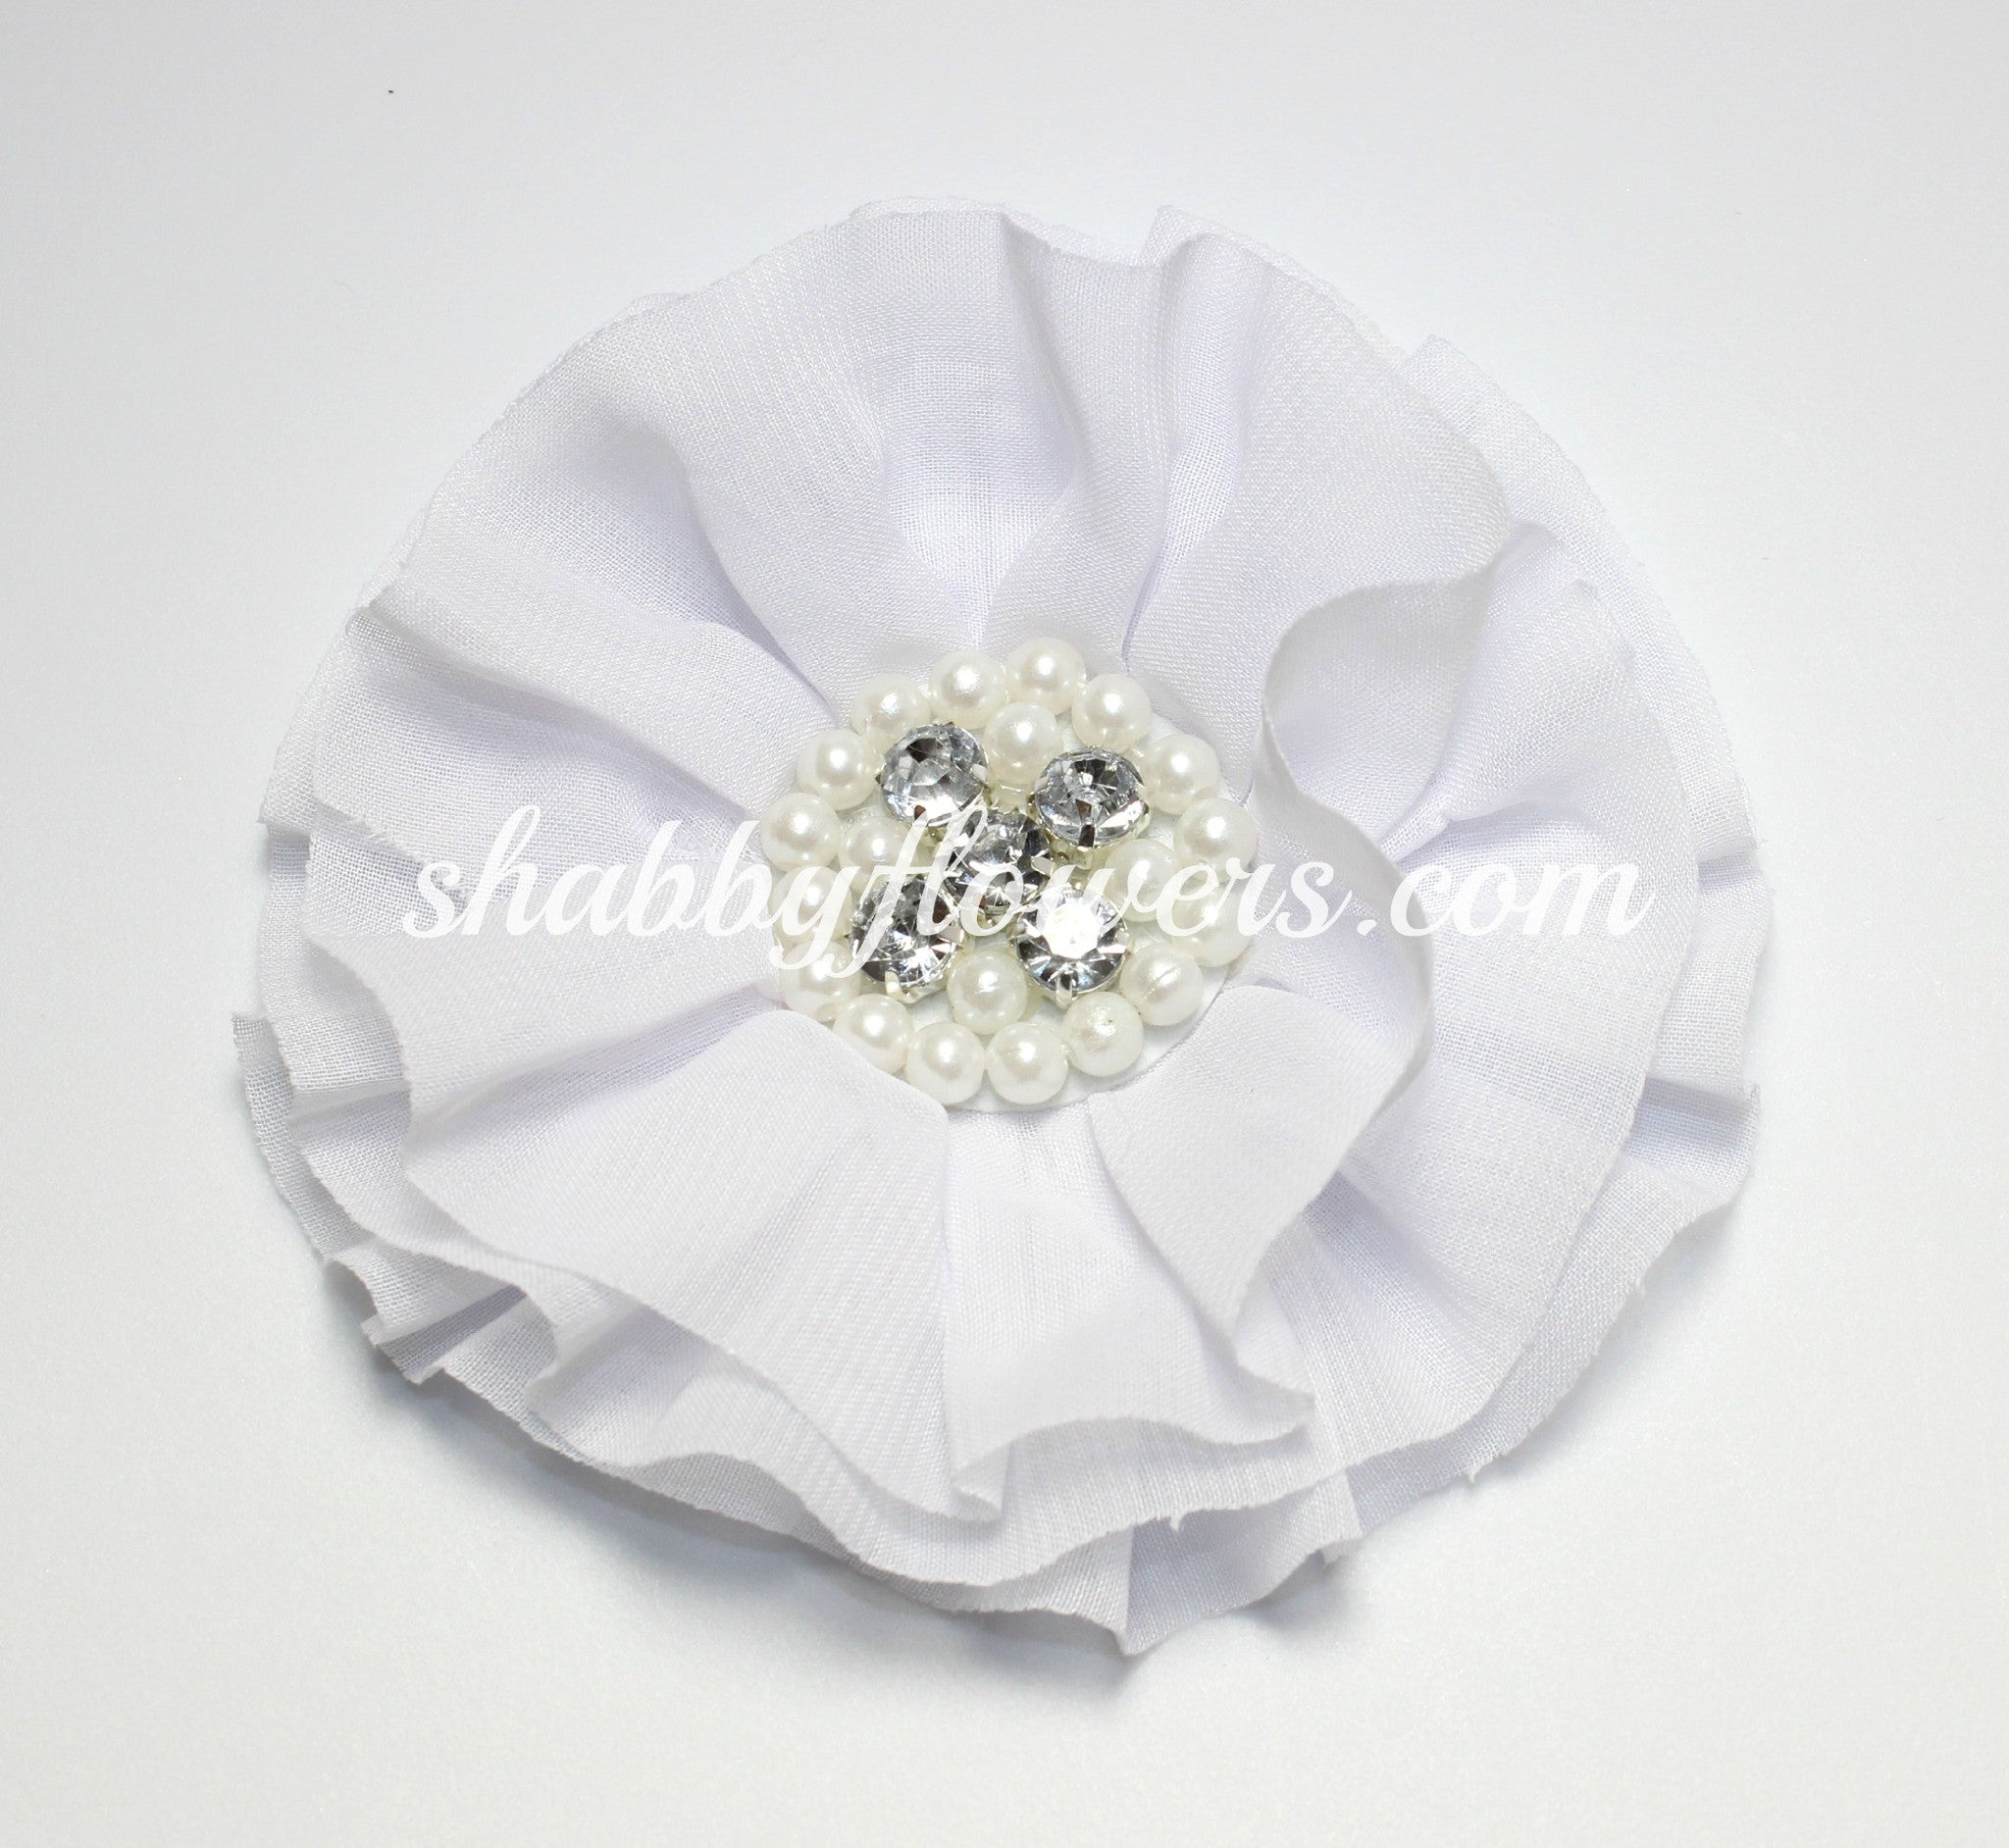 Jeweled Flower - White - shabbyflowers.com